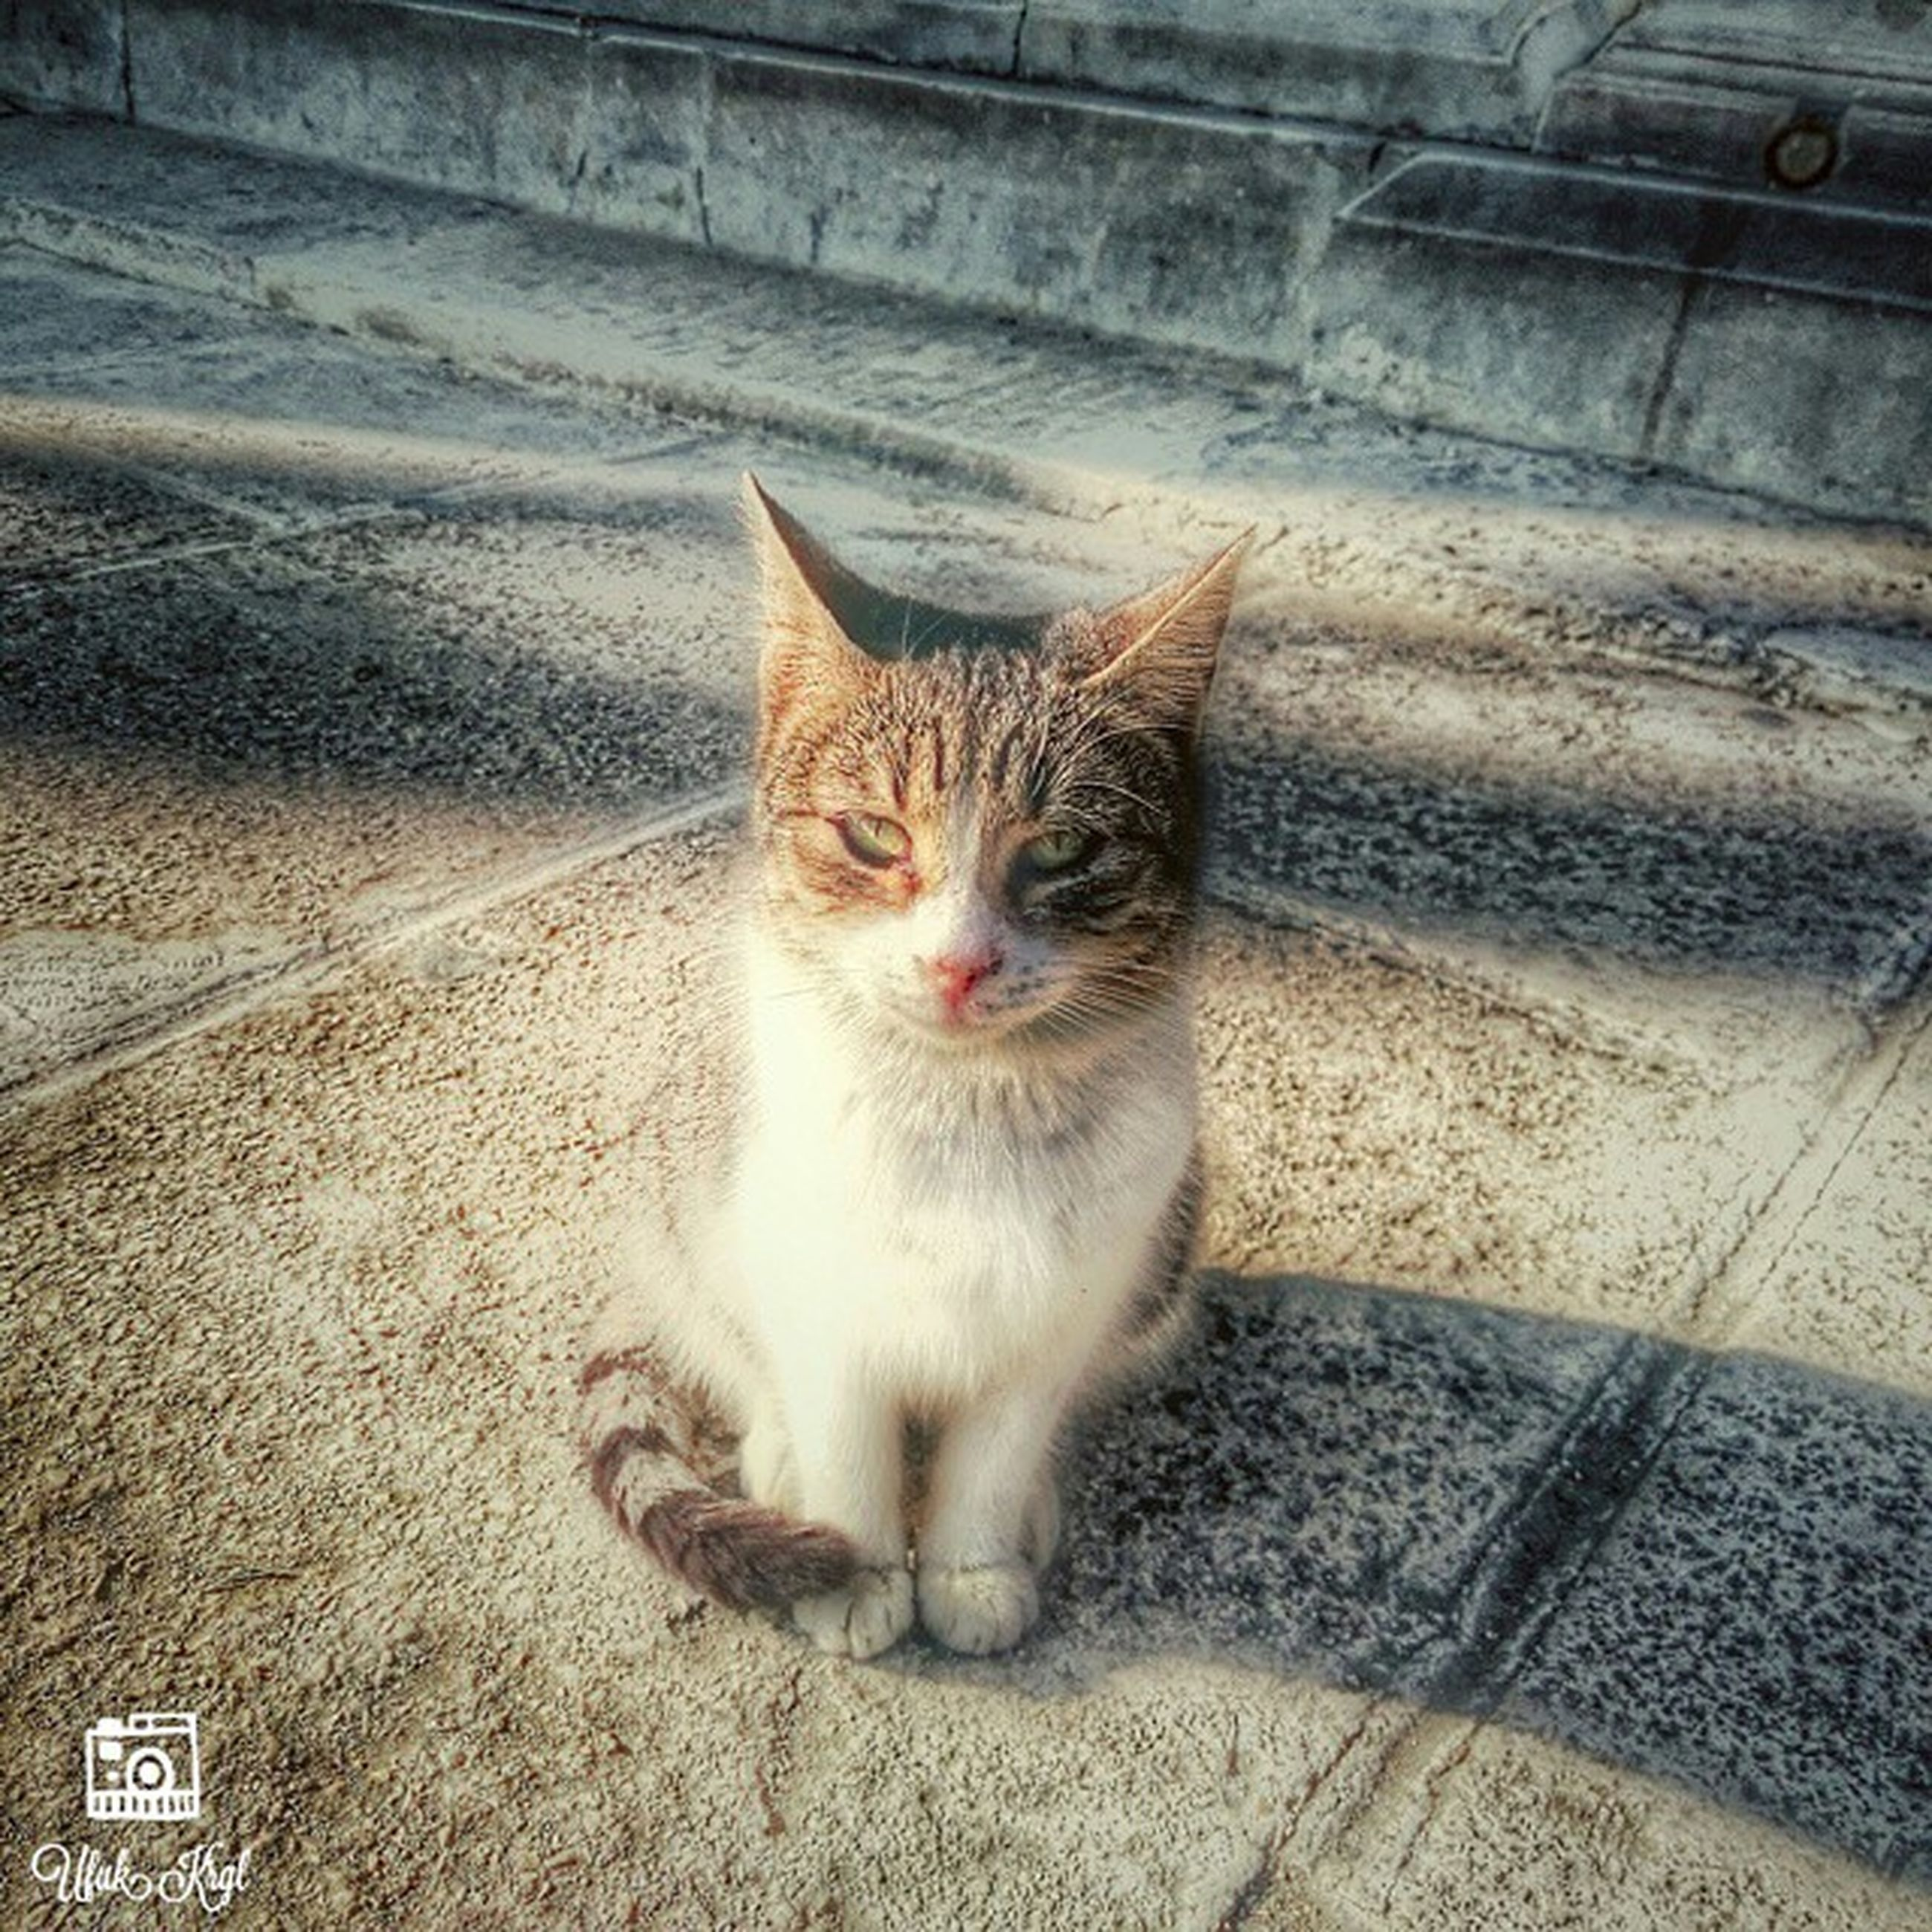 domestic cat, cat, pets, domestic animals, feline, one animal, mammal, animal themes, whisker, looking at camera, portrait, street, outdoors, no people, day, high angle view, wall - building feature, close-up, front view, sitting